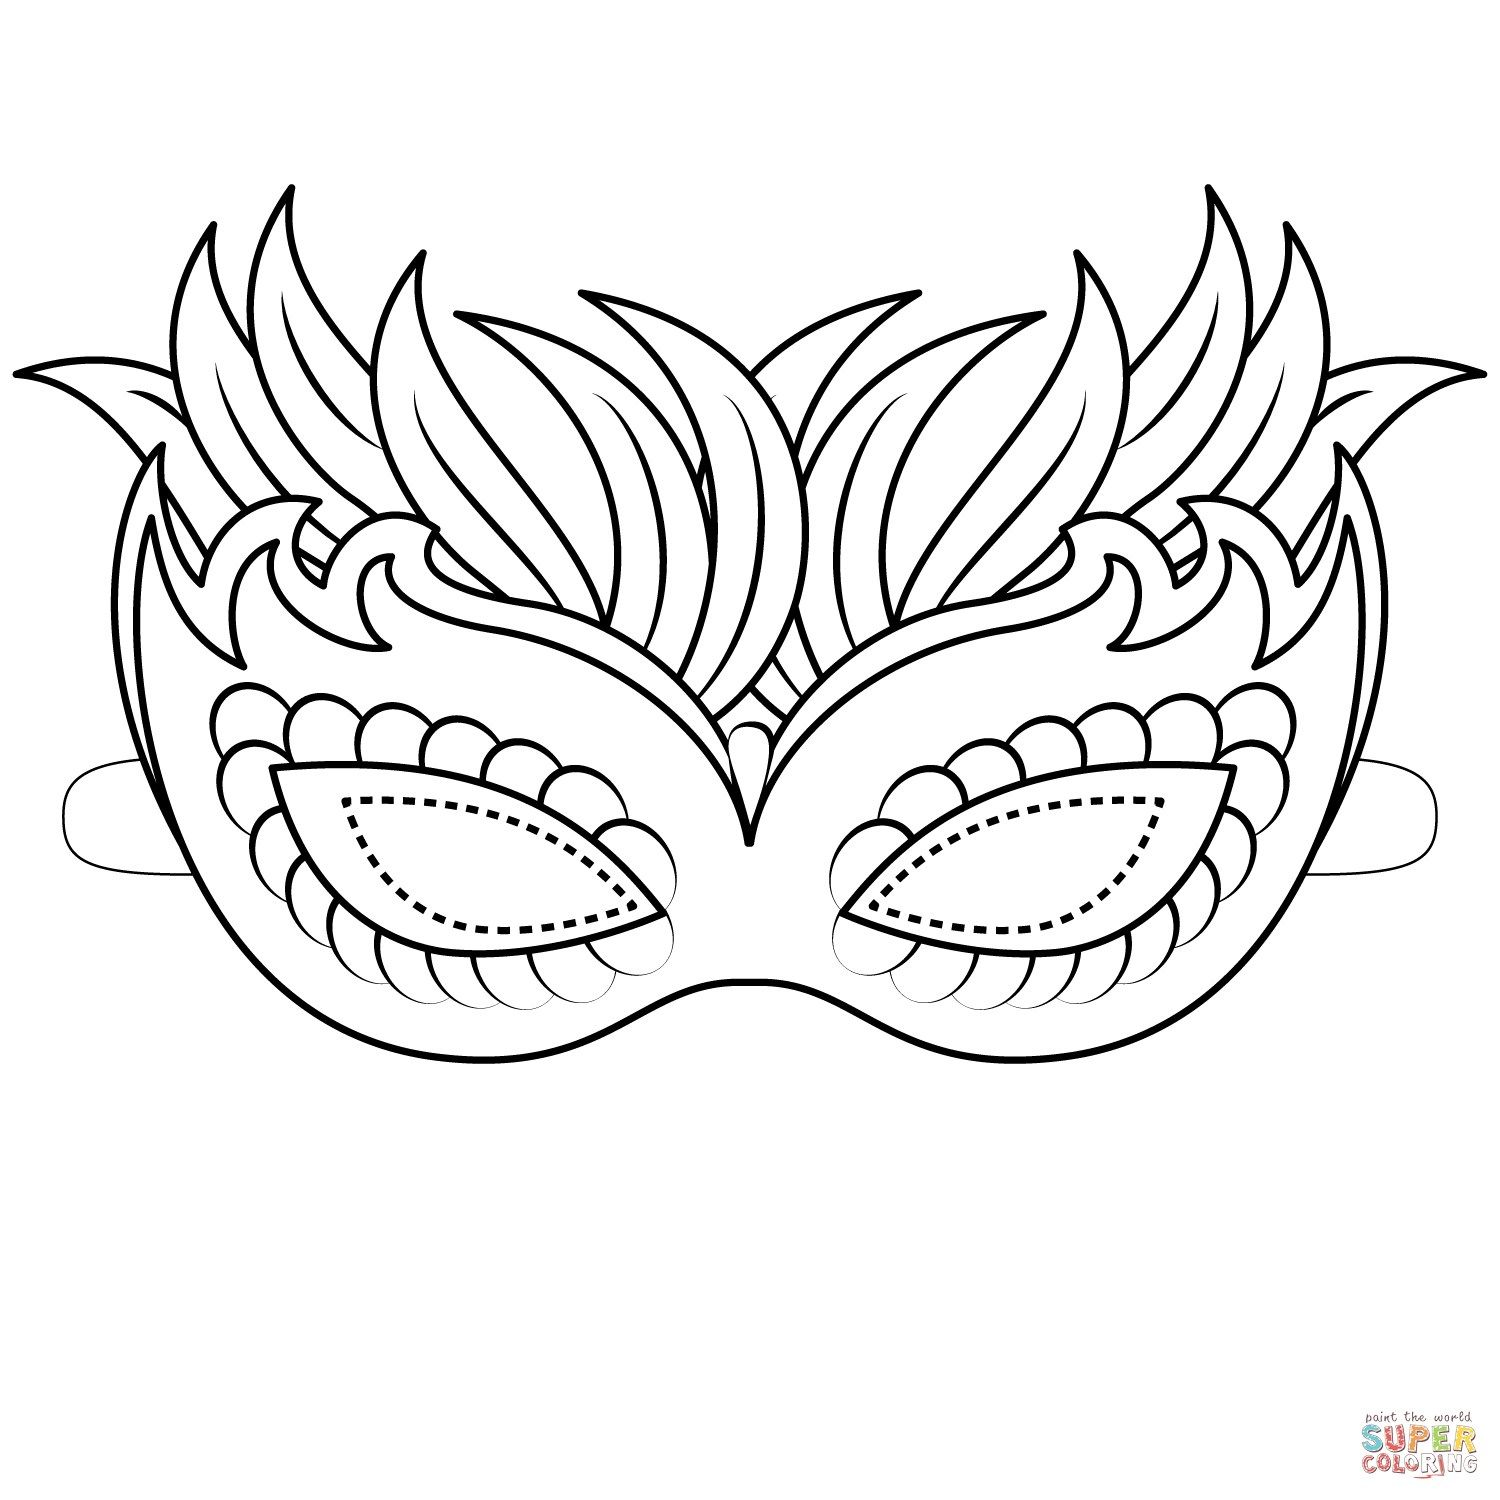 25 Excellent Image Of Mask Coloring Pages Pj Masks Coloring